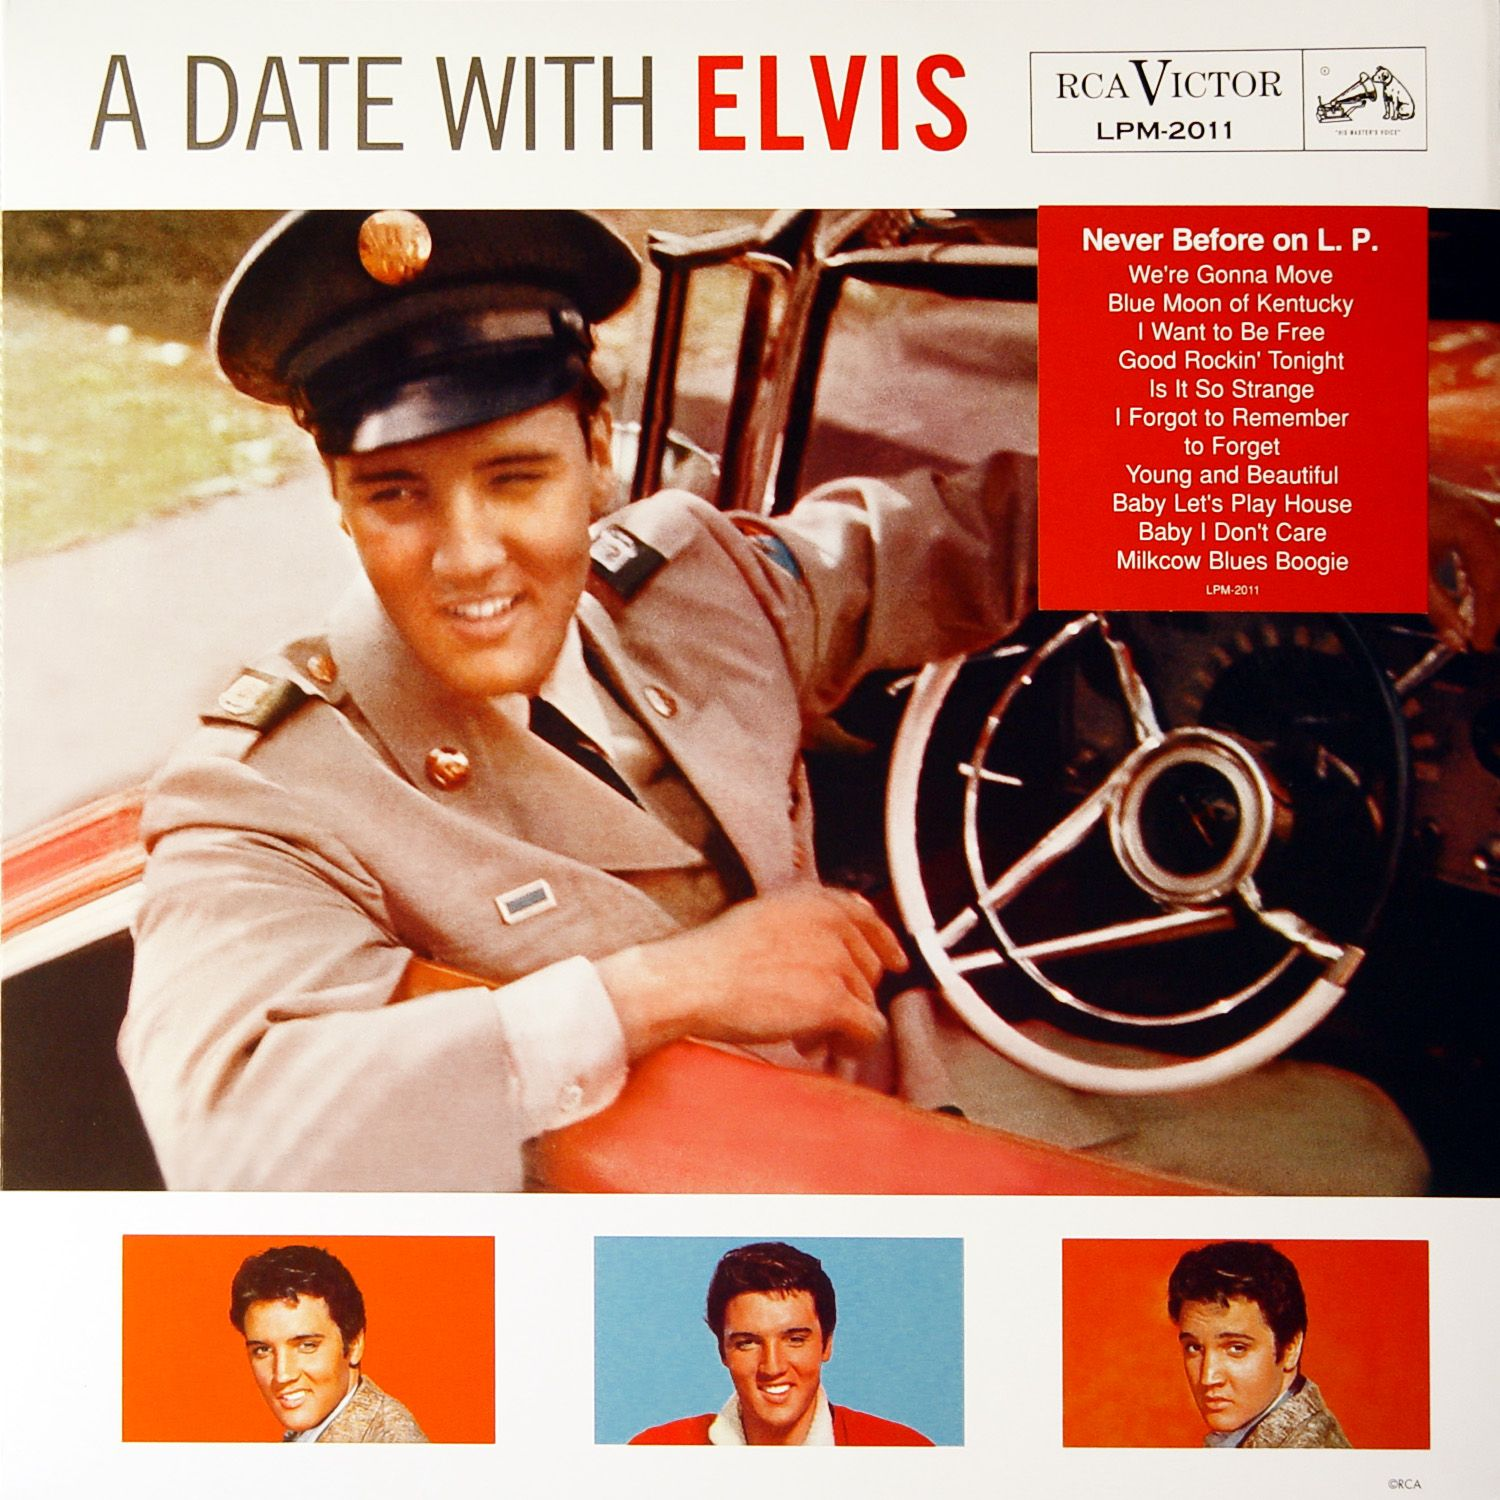 Elvis Presley - A Date With Elvis - Album Cover